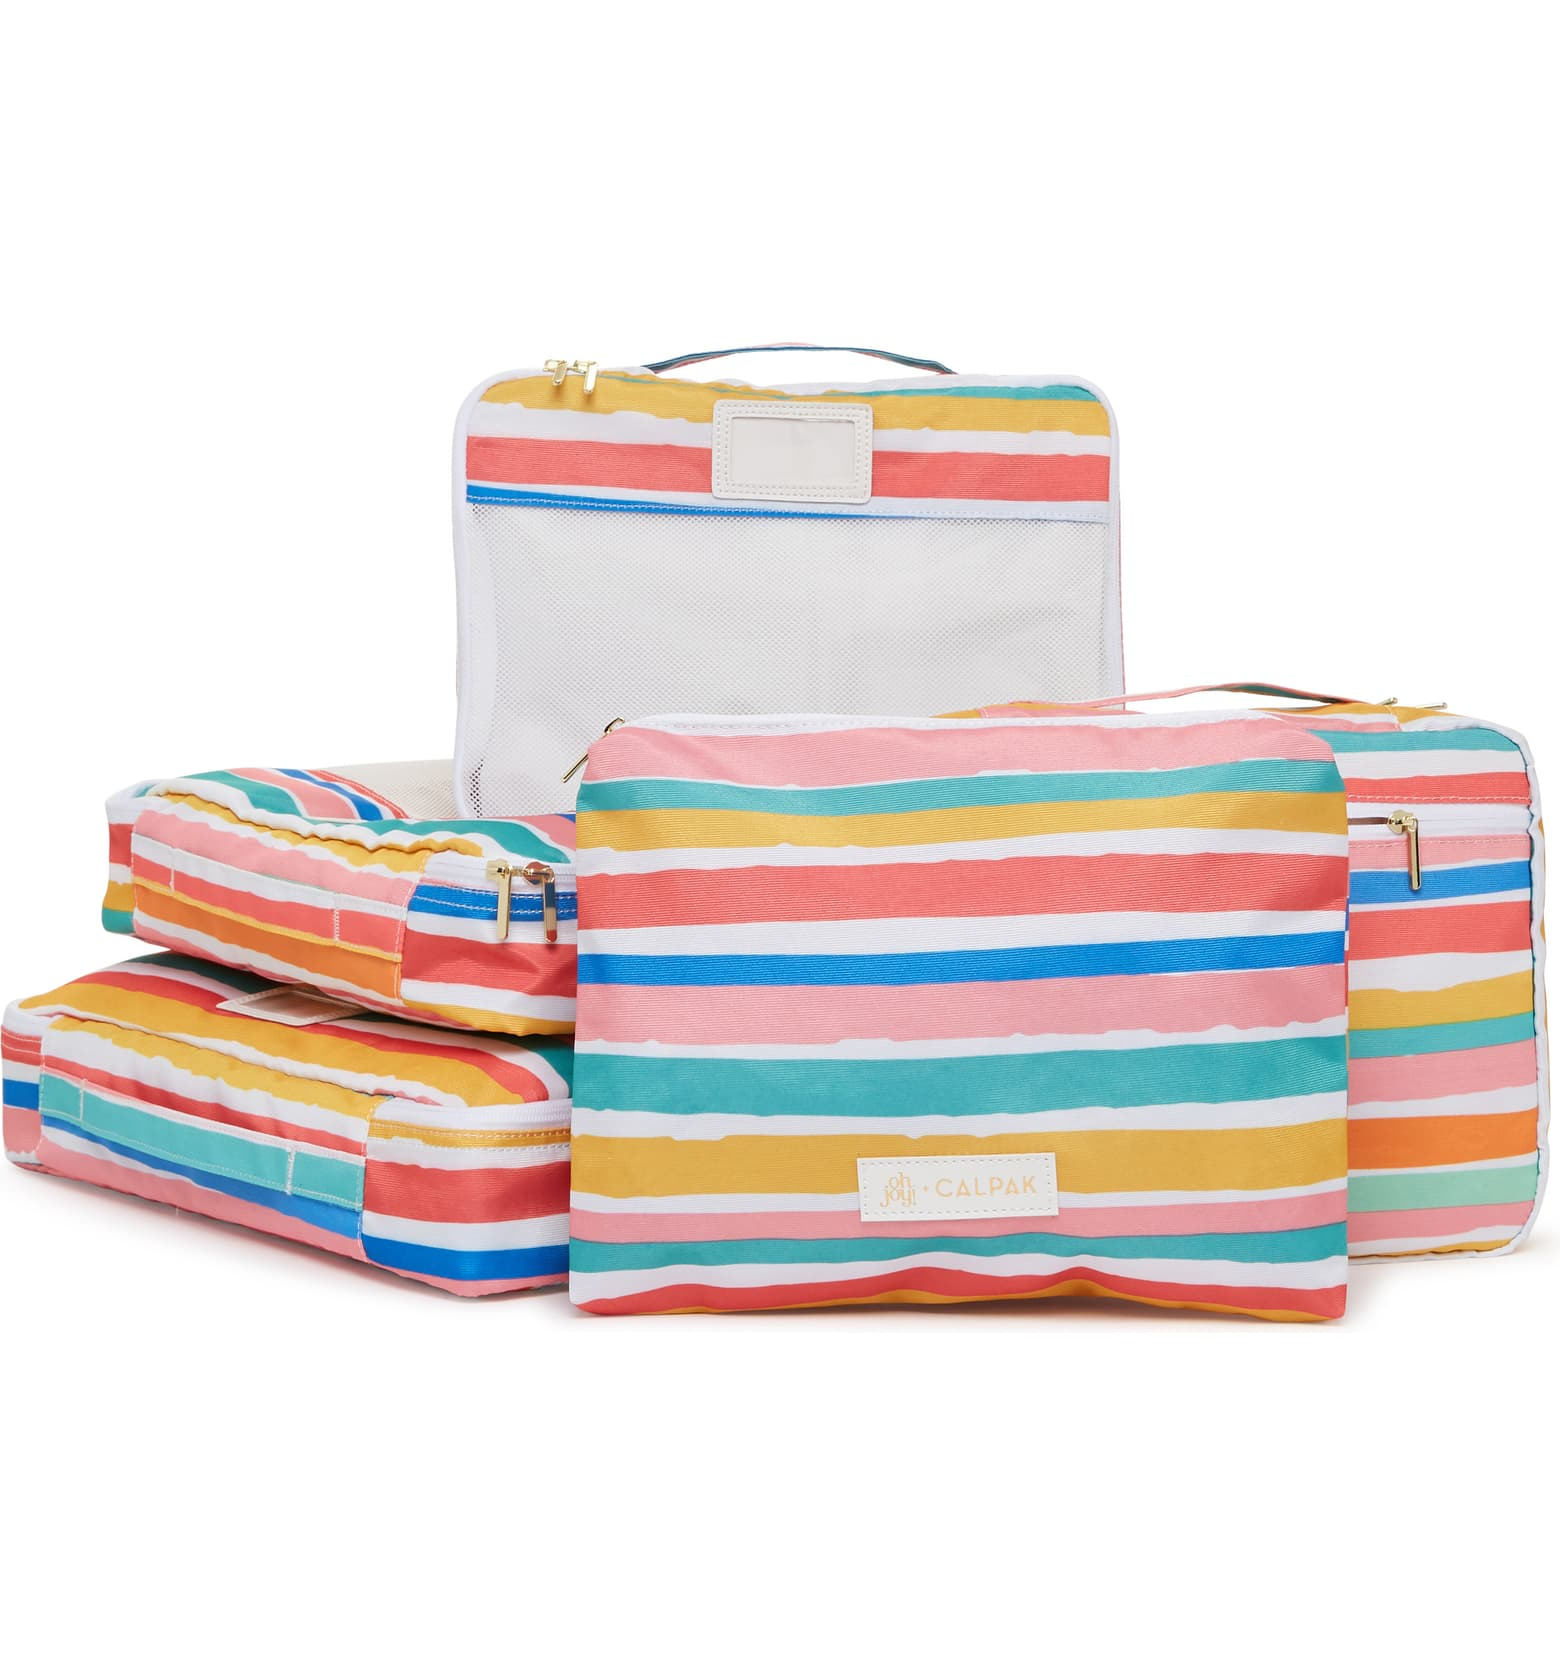 Oh Joy! CalPack Packing Cubes, $48 - Packing cubes can help you organize your clothes and compress them into less space in your suitcase. There are lots of cheaper versions, but these brightly-colored cubes spark joy.